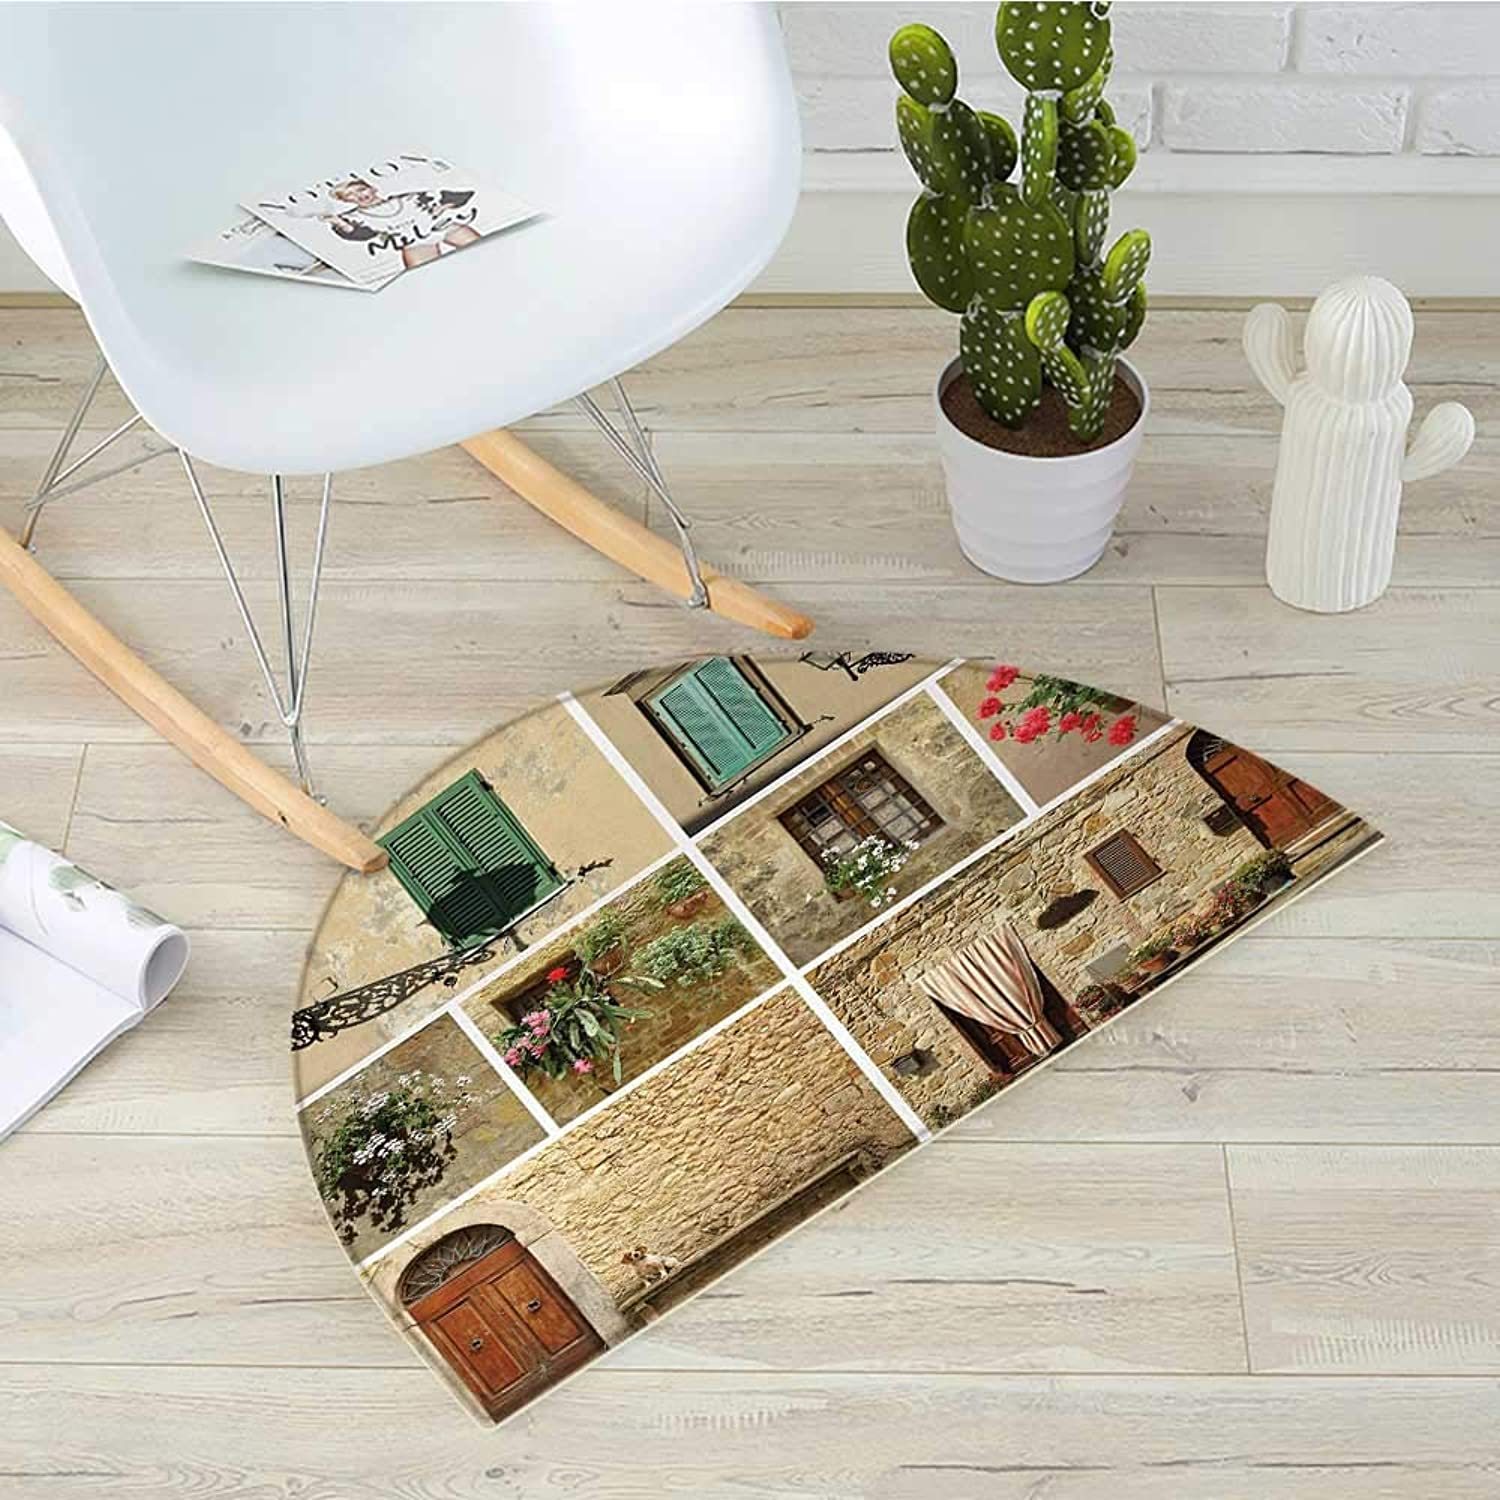 Italian Semicircular CushionPictures of Italian Lifestyle with Old Classic Shutter Window Stone Houses Print Entry Door Mat H 35.4  xD 53.1  Multicolor